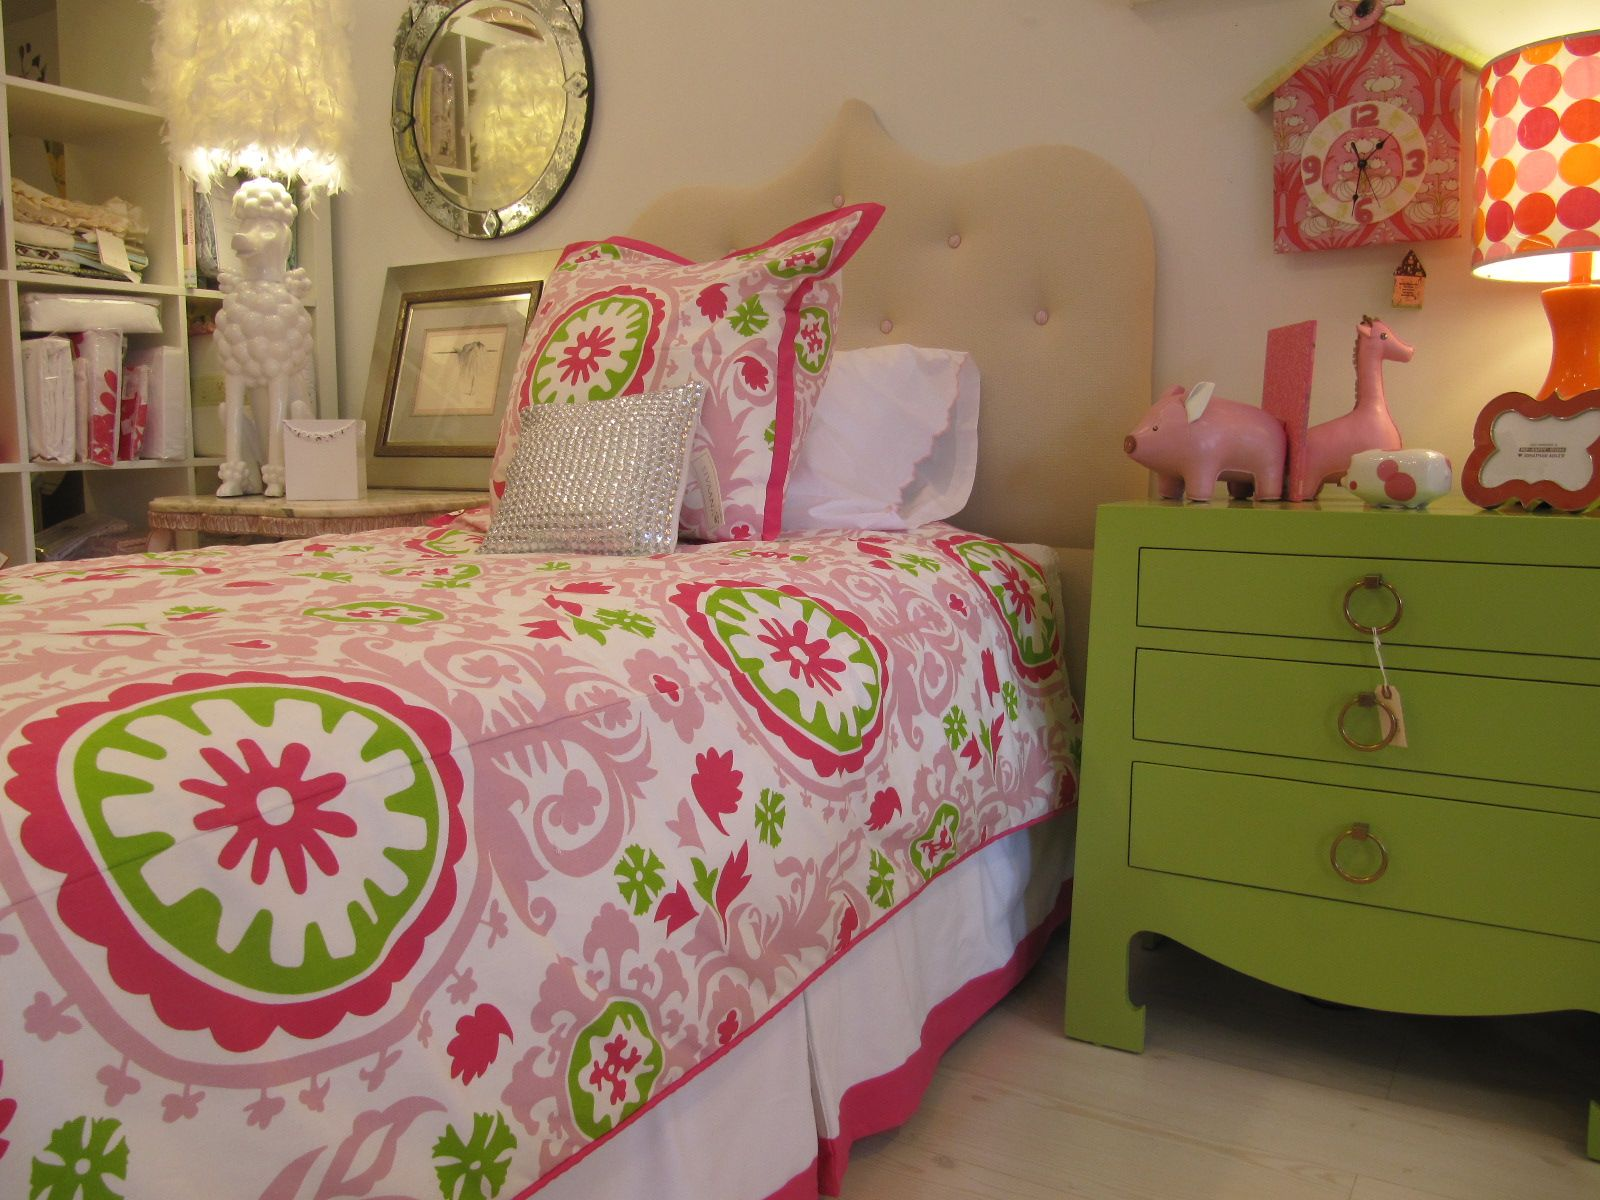 Girls bedroom ideas in pink green socialcafe magazine kids girls bedroom ideas in pink green socialcafe magazine jeuxipadfo Images